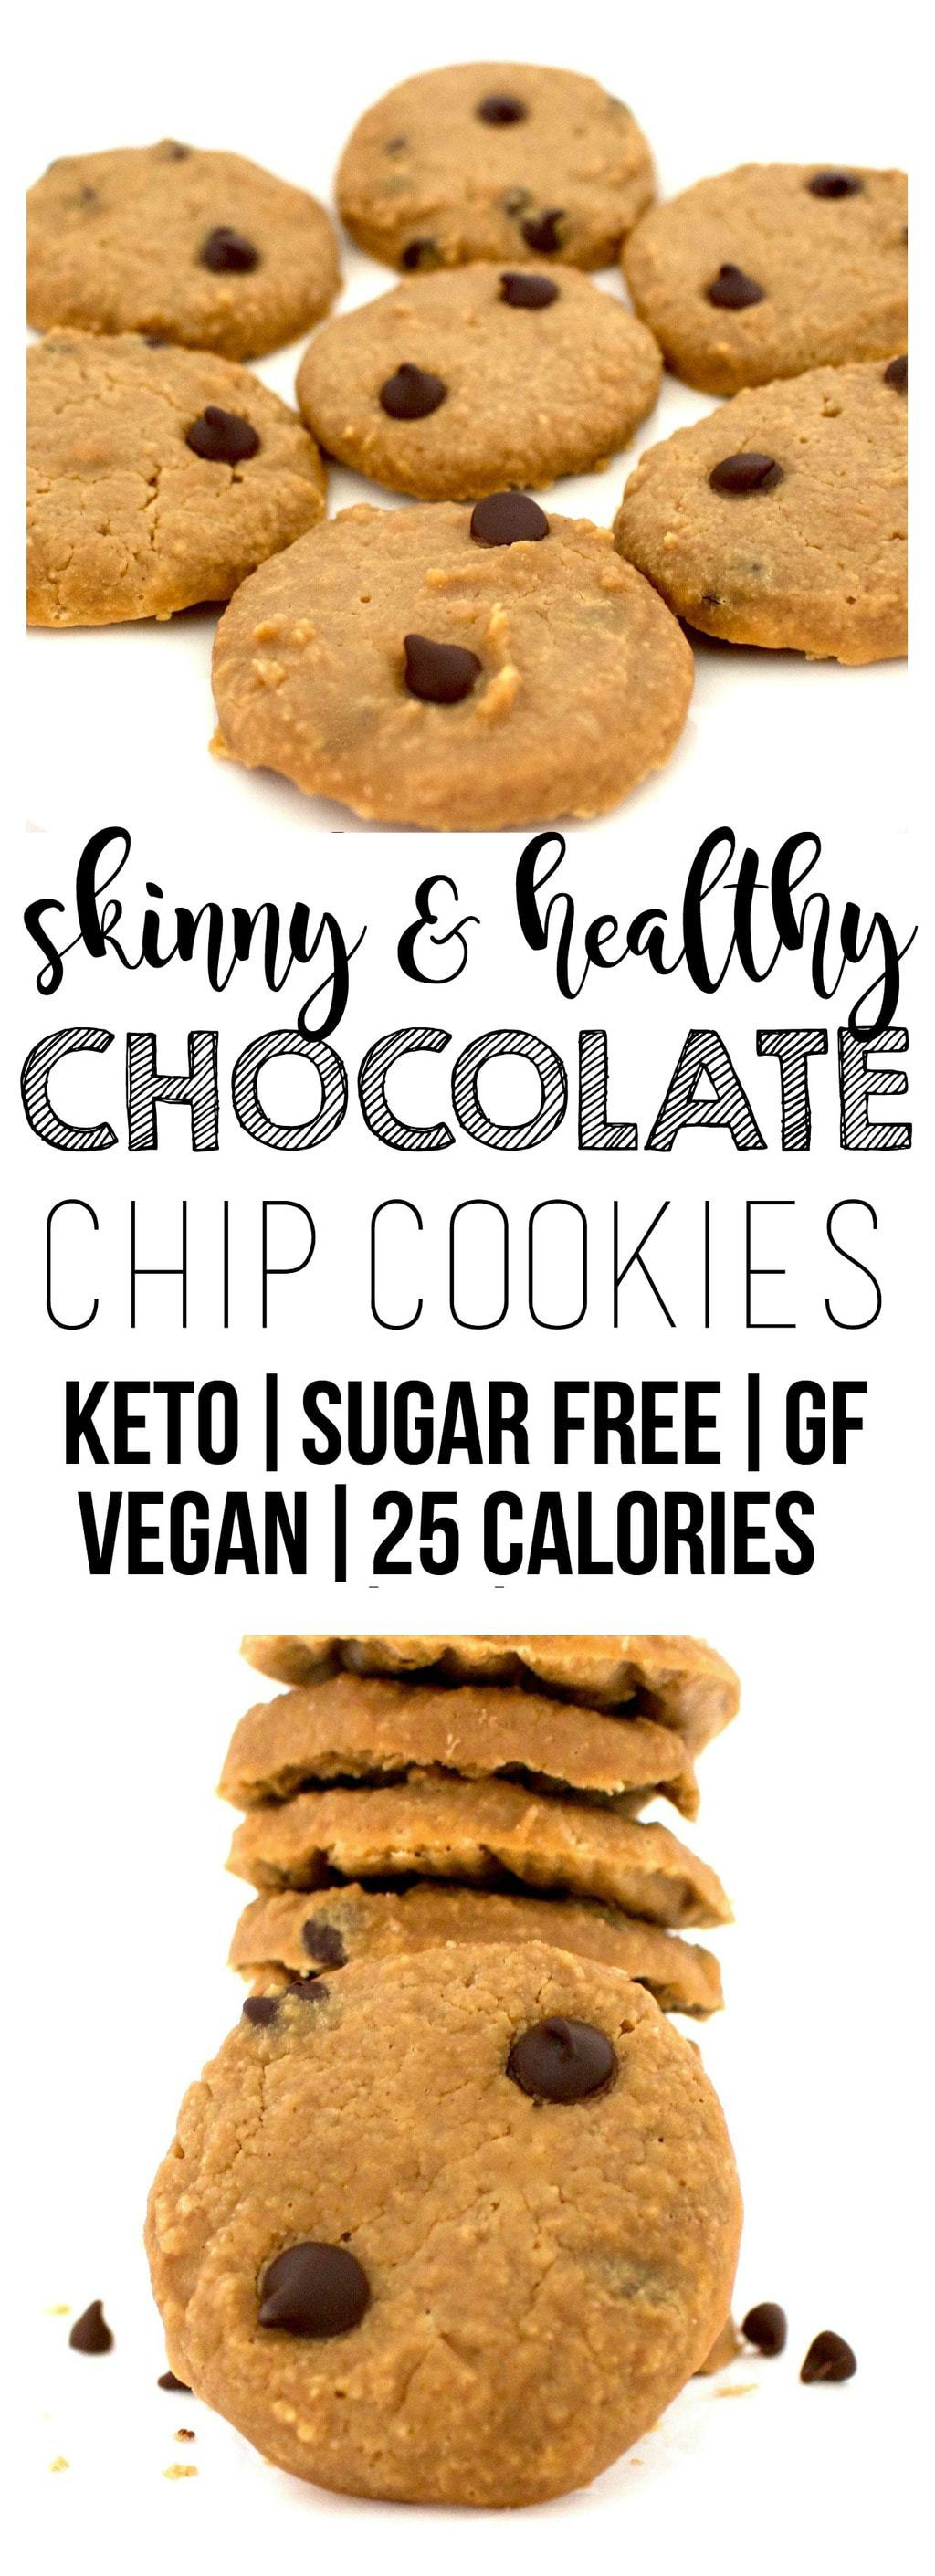 These Skinny Chocolate Chip Cookies are the perfect, healthy treat! They are vegan, gluten-free, sugar-free, keto, low-carb, and super low-calorie - only 25 calories each.